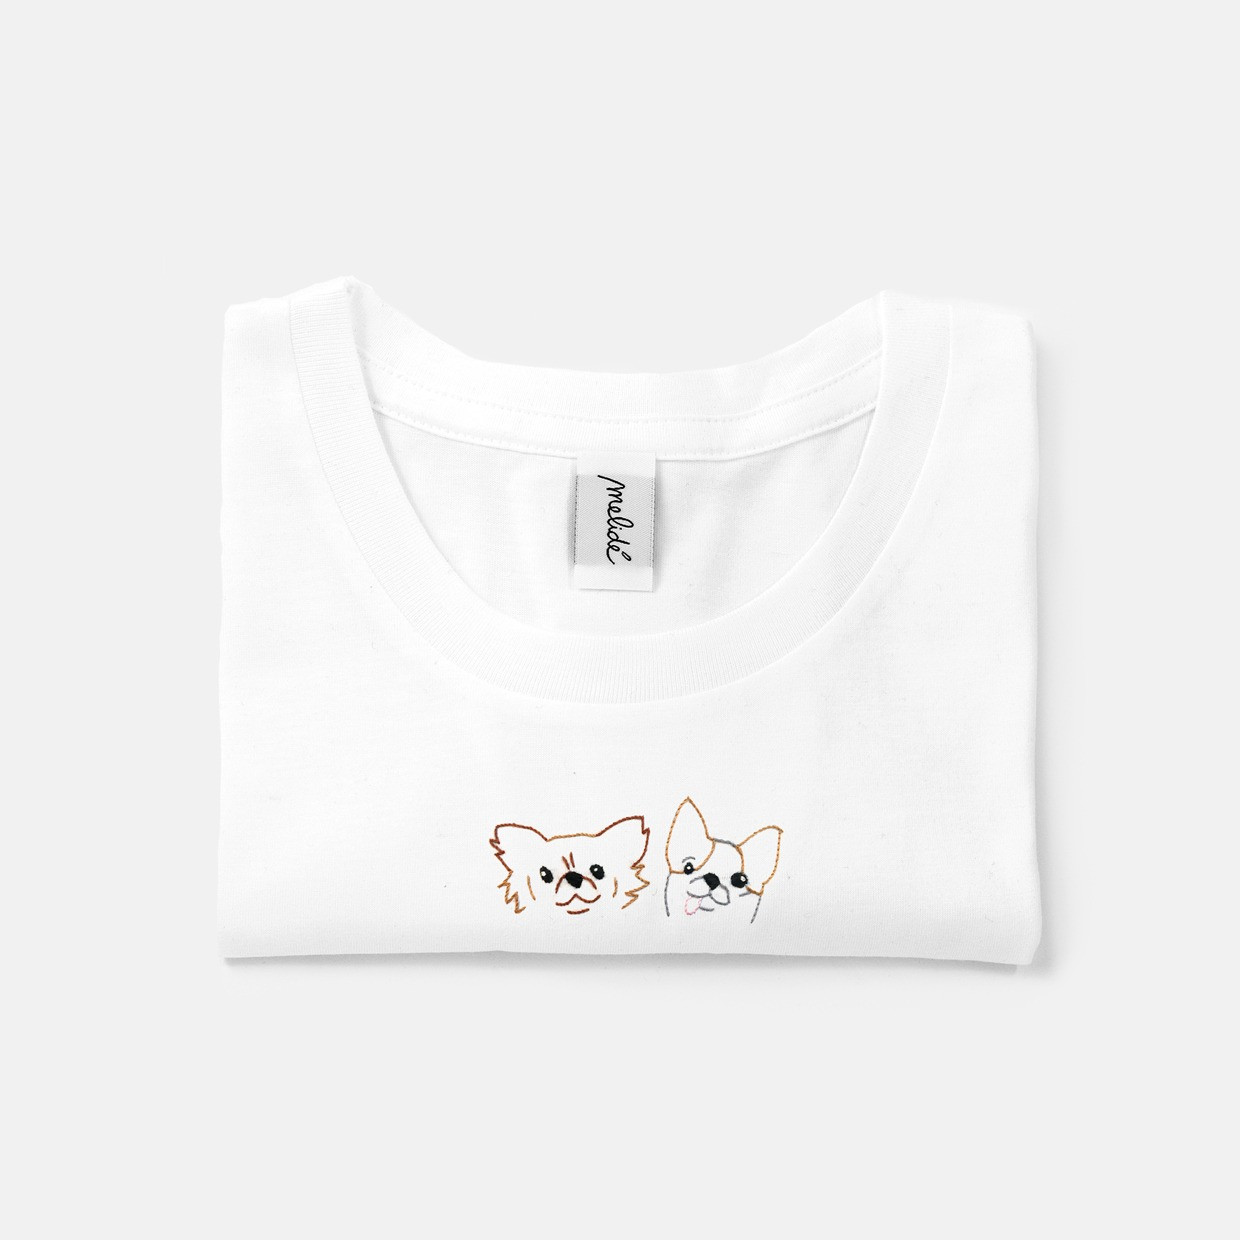 The Gue and Chew slim fit tee